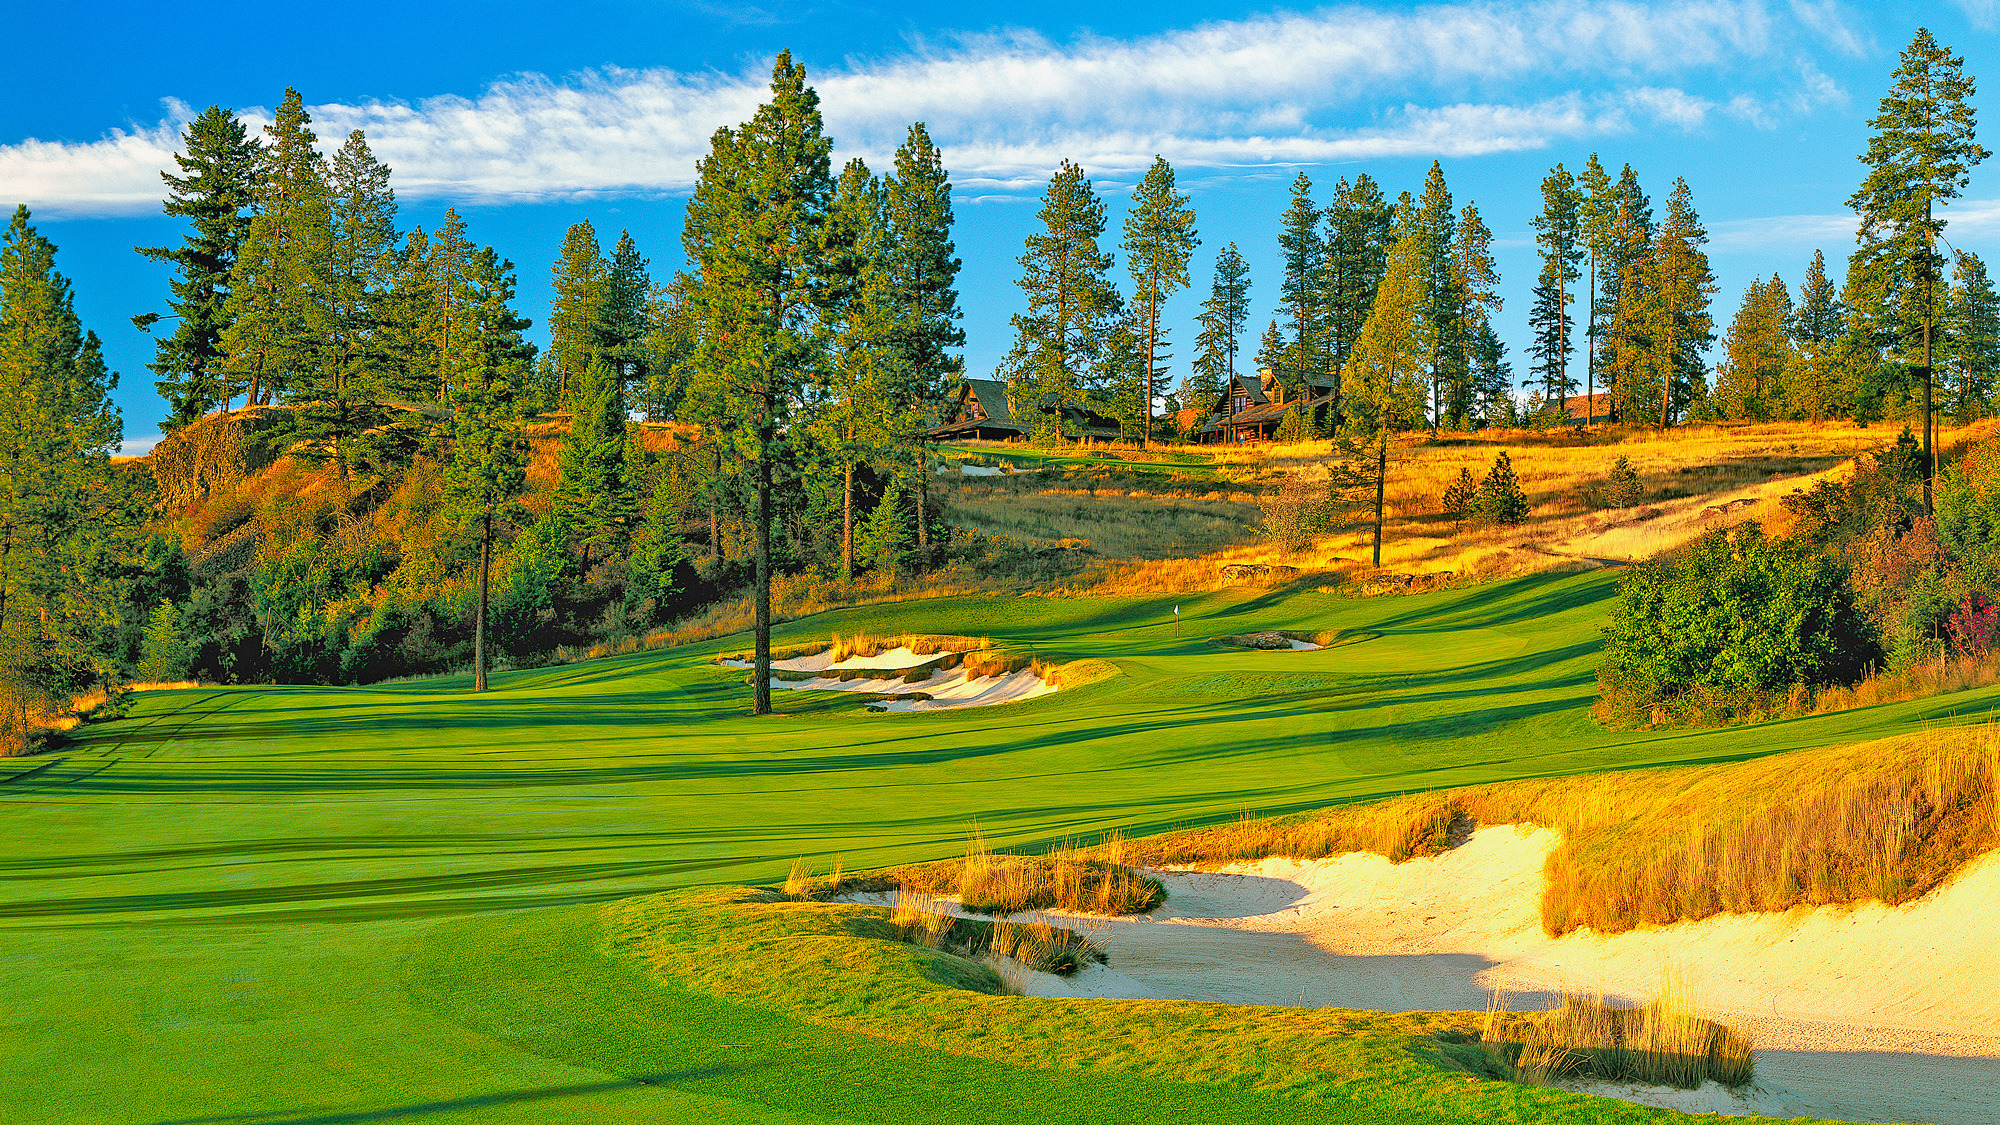 """<p><strong>Public:</strong> Circling Raven, Worley</p><p><strong>⇐ Private:</strong> Gozzer Ranch, Harrison</p><p><a class=""""standard-button"""" href=""""http://www.golf.com/tee-times#/course/circling-raven-golf-club-idaho"""" target=""""_blank"""">TEE TIMES</a></p>"""